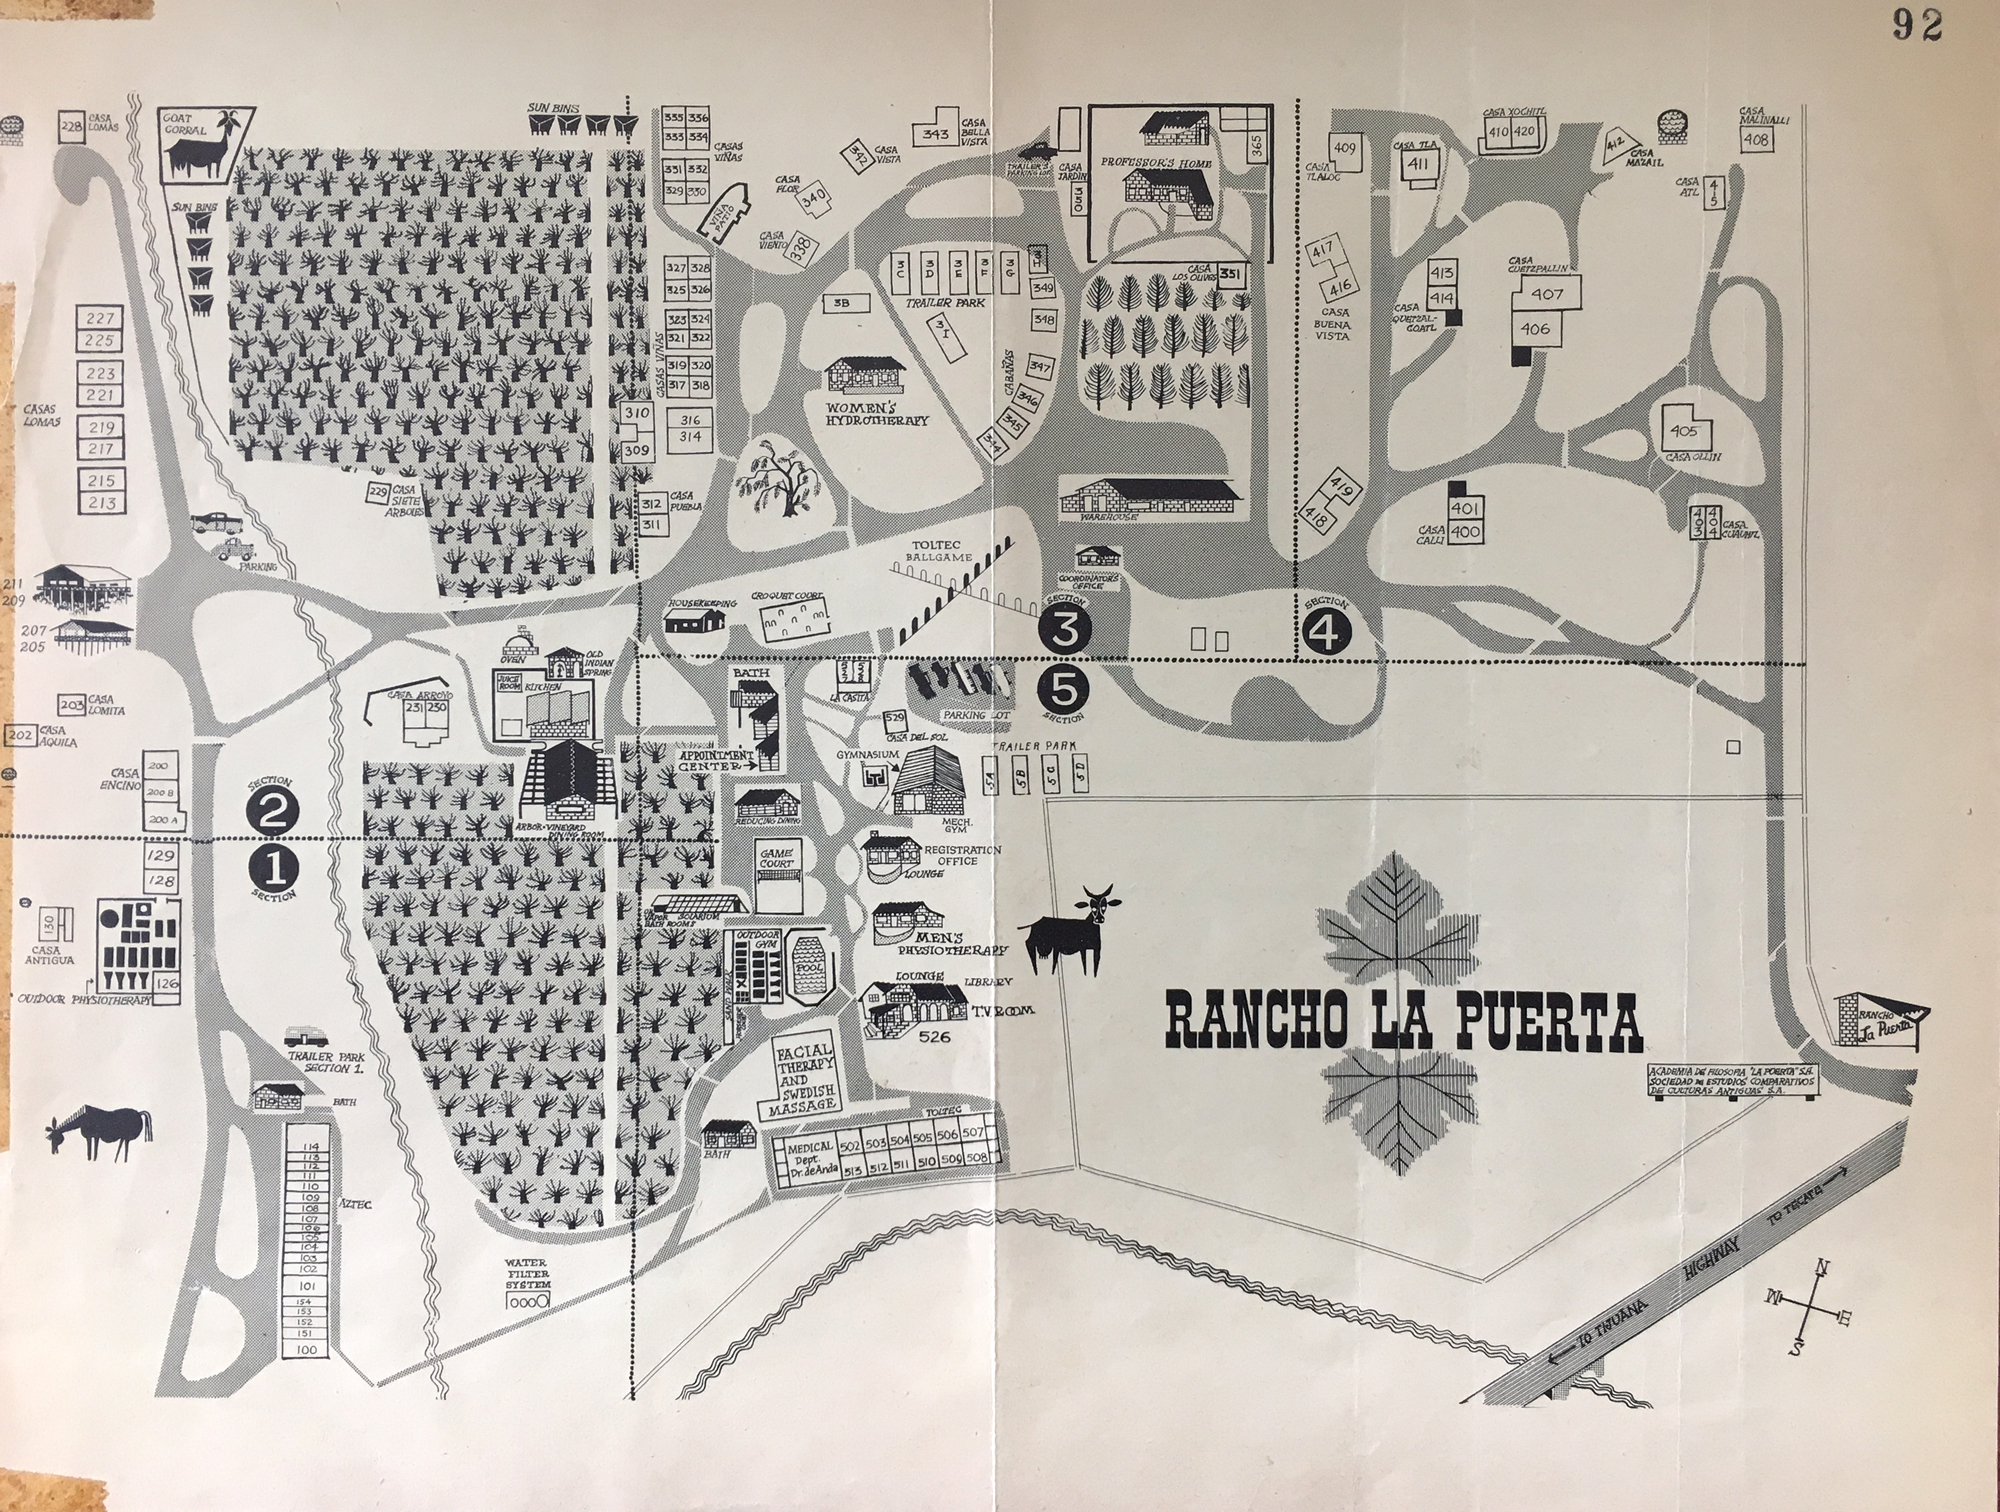 Origins Of The Ranch Part Liv Rancho La Puerta Actually Prefer To Get Several Copies My Floor Plan And Draw Each In Many Ways Dear Time Traveler Youd Find It Much Like Today Andnot Surprisinglysome Traditions Activities Have Fallen By